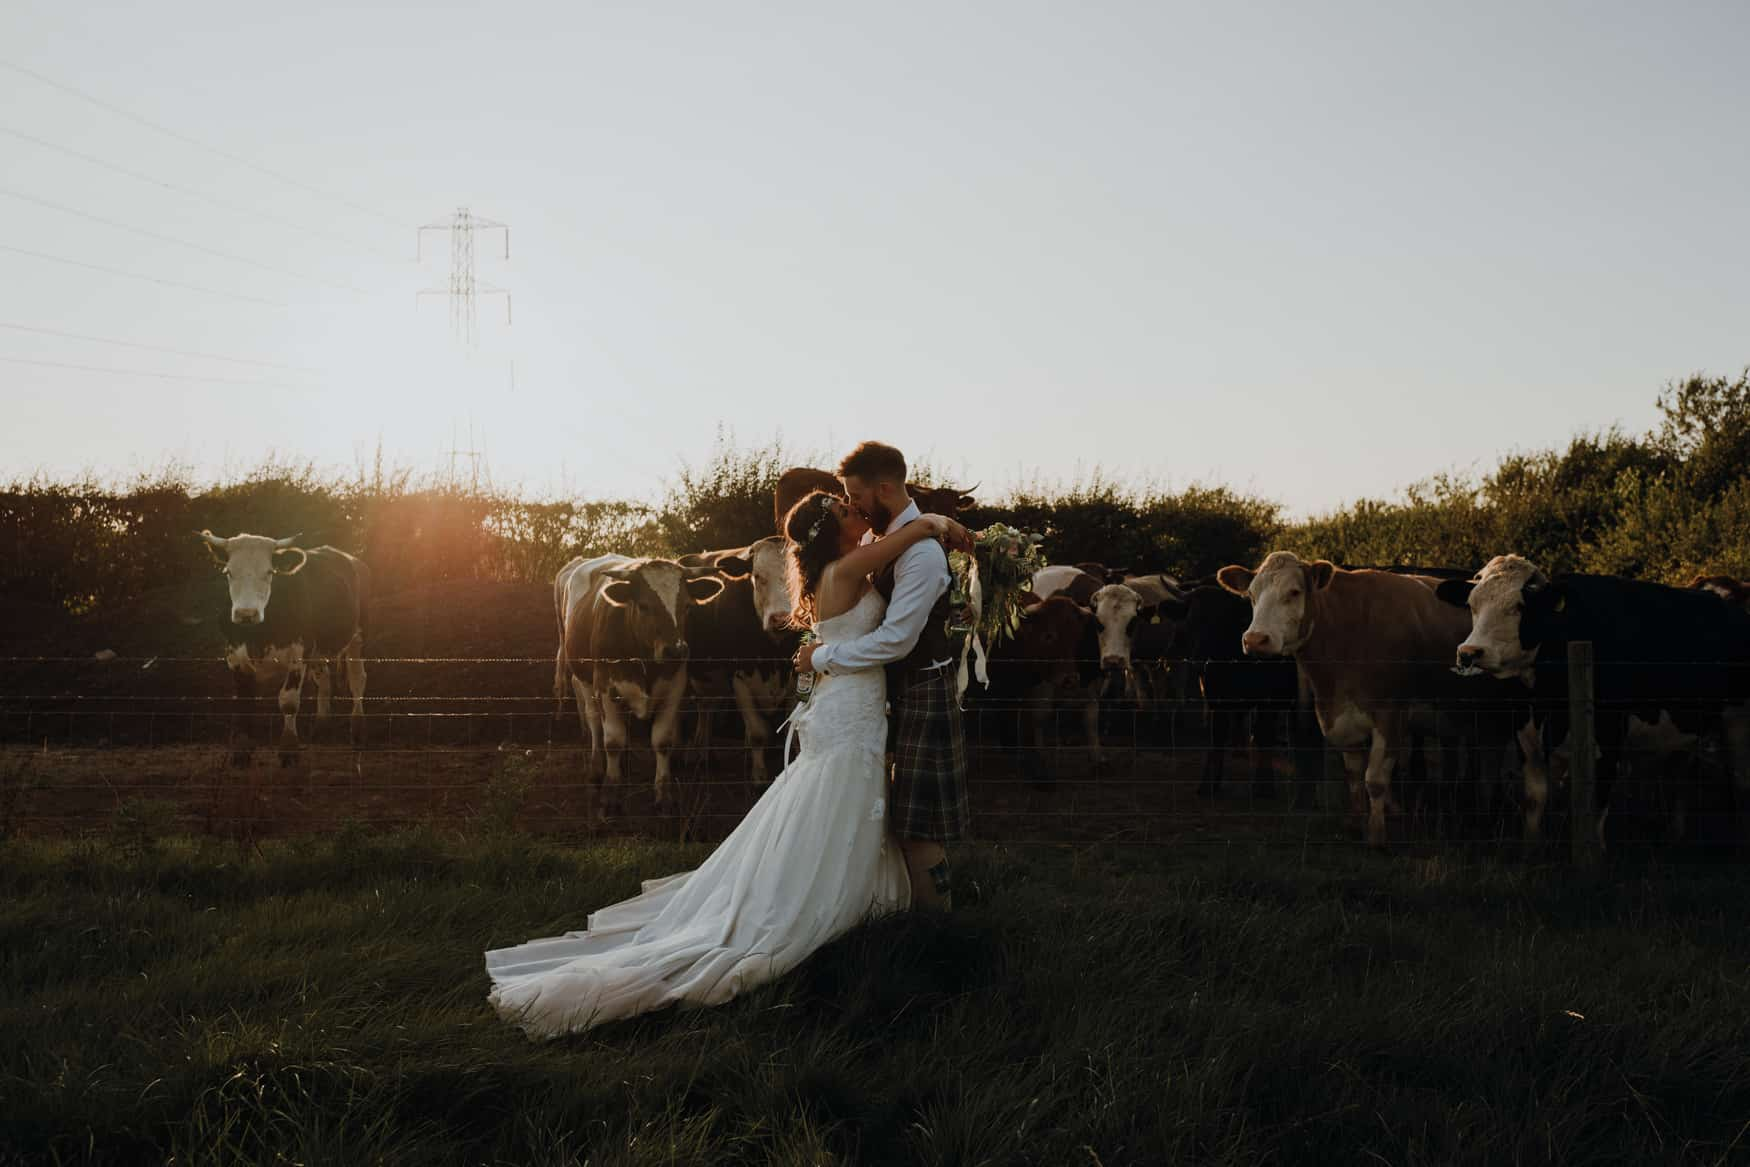 bride and groom portrait in a feild of cows backlit by the sun